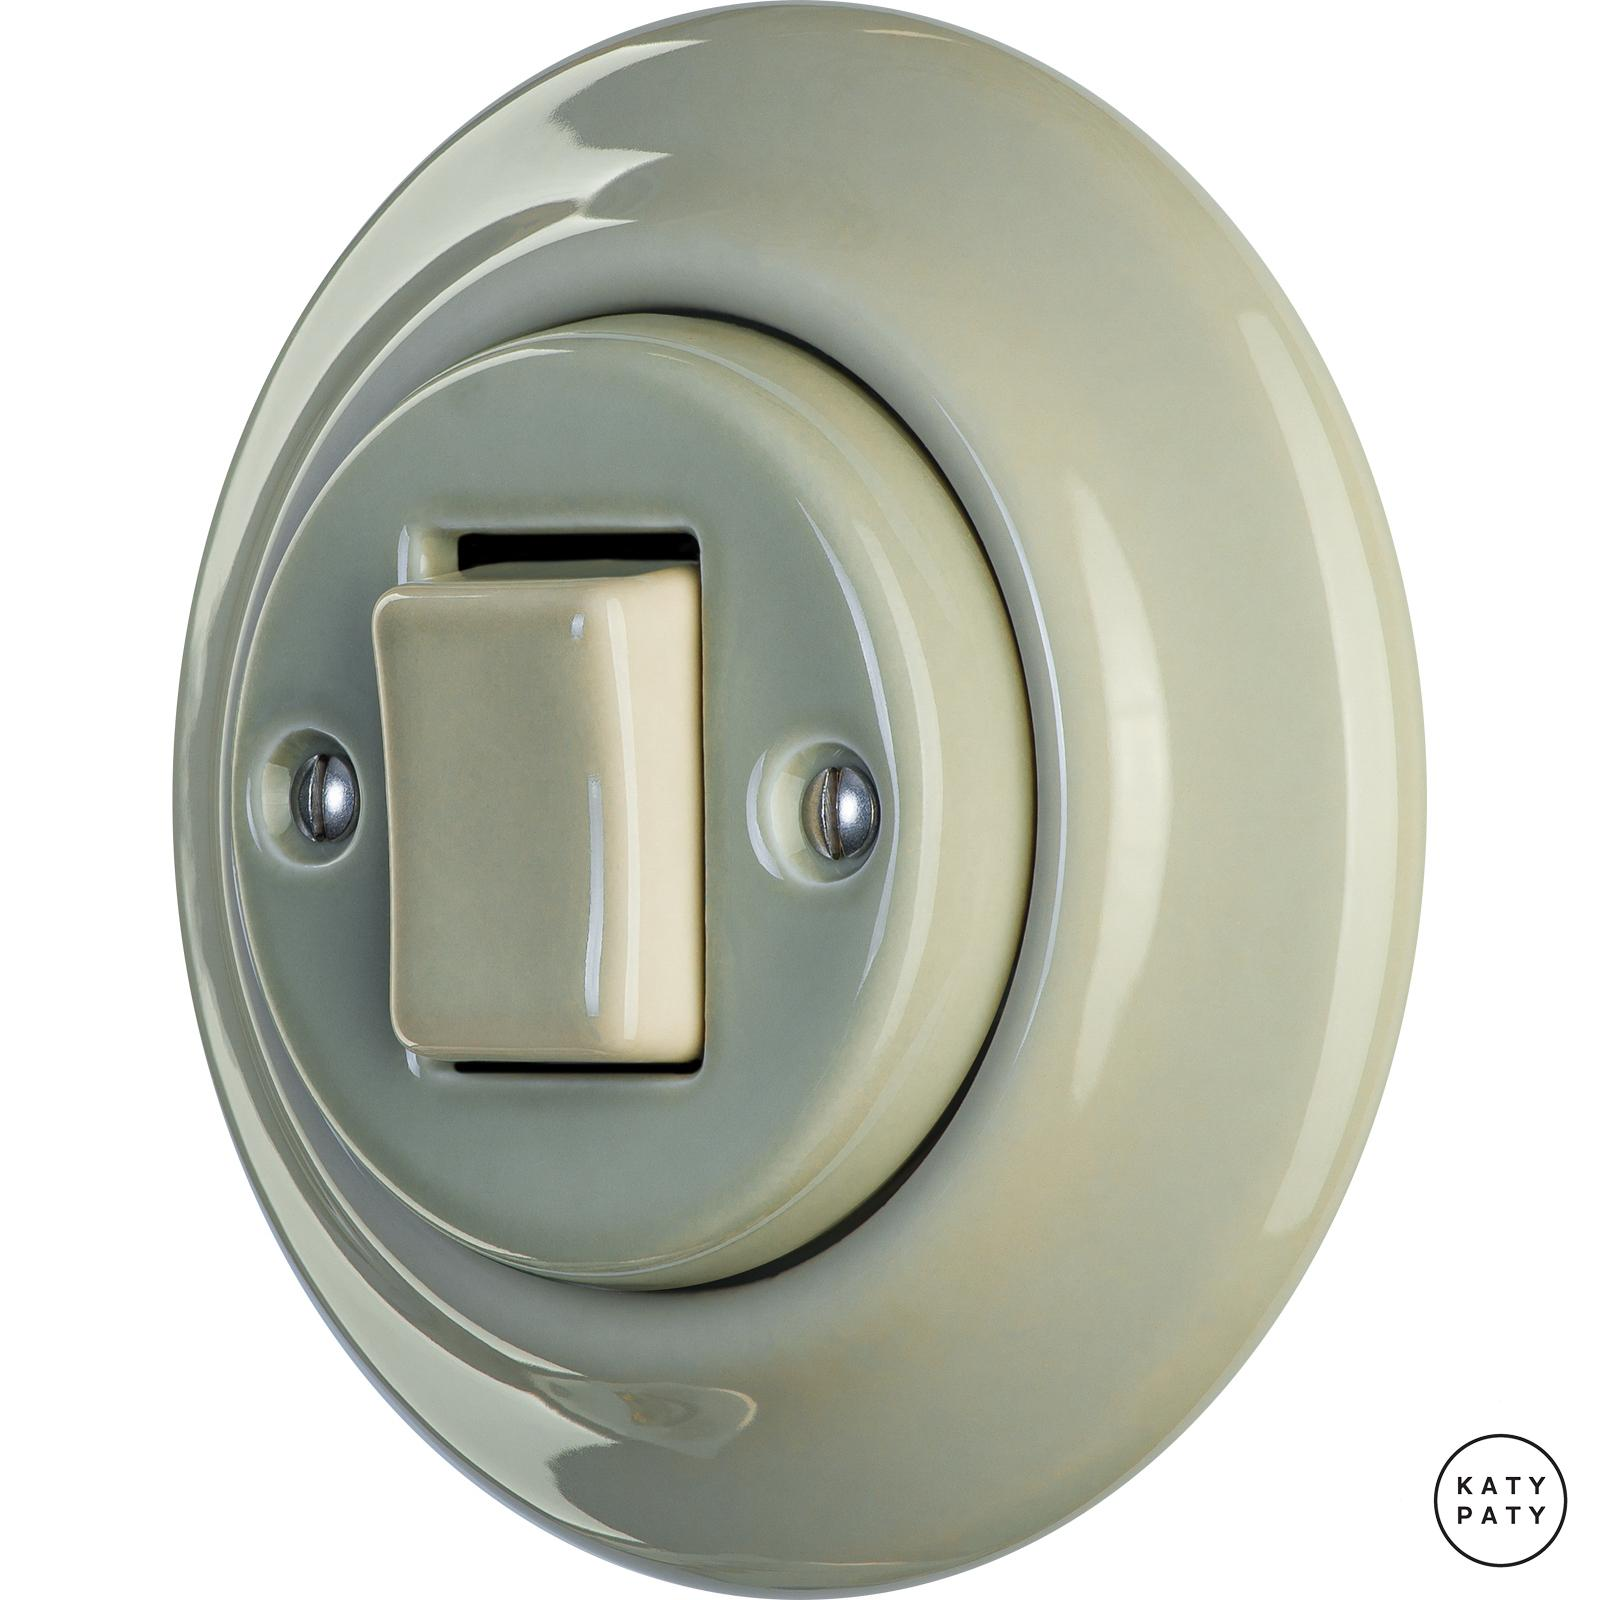 Porcelain switches - 1 gang - FAT ()  - CHLORA | Katy Paty